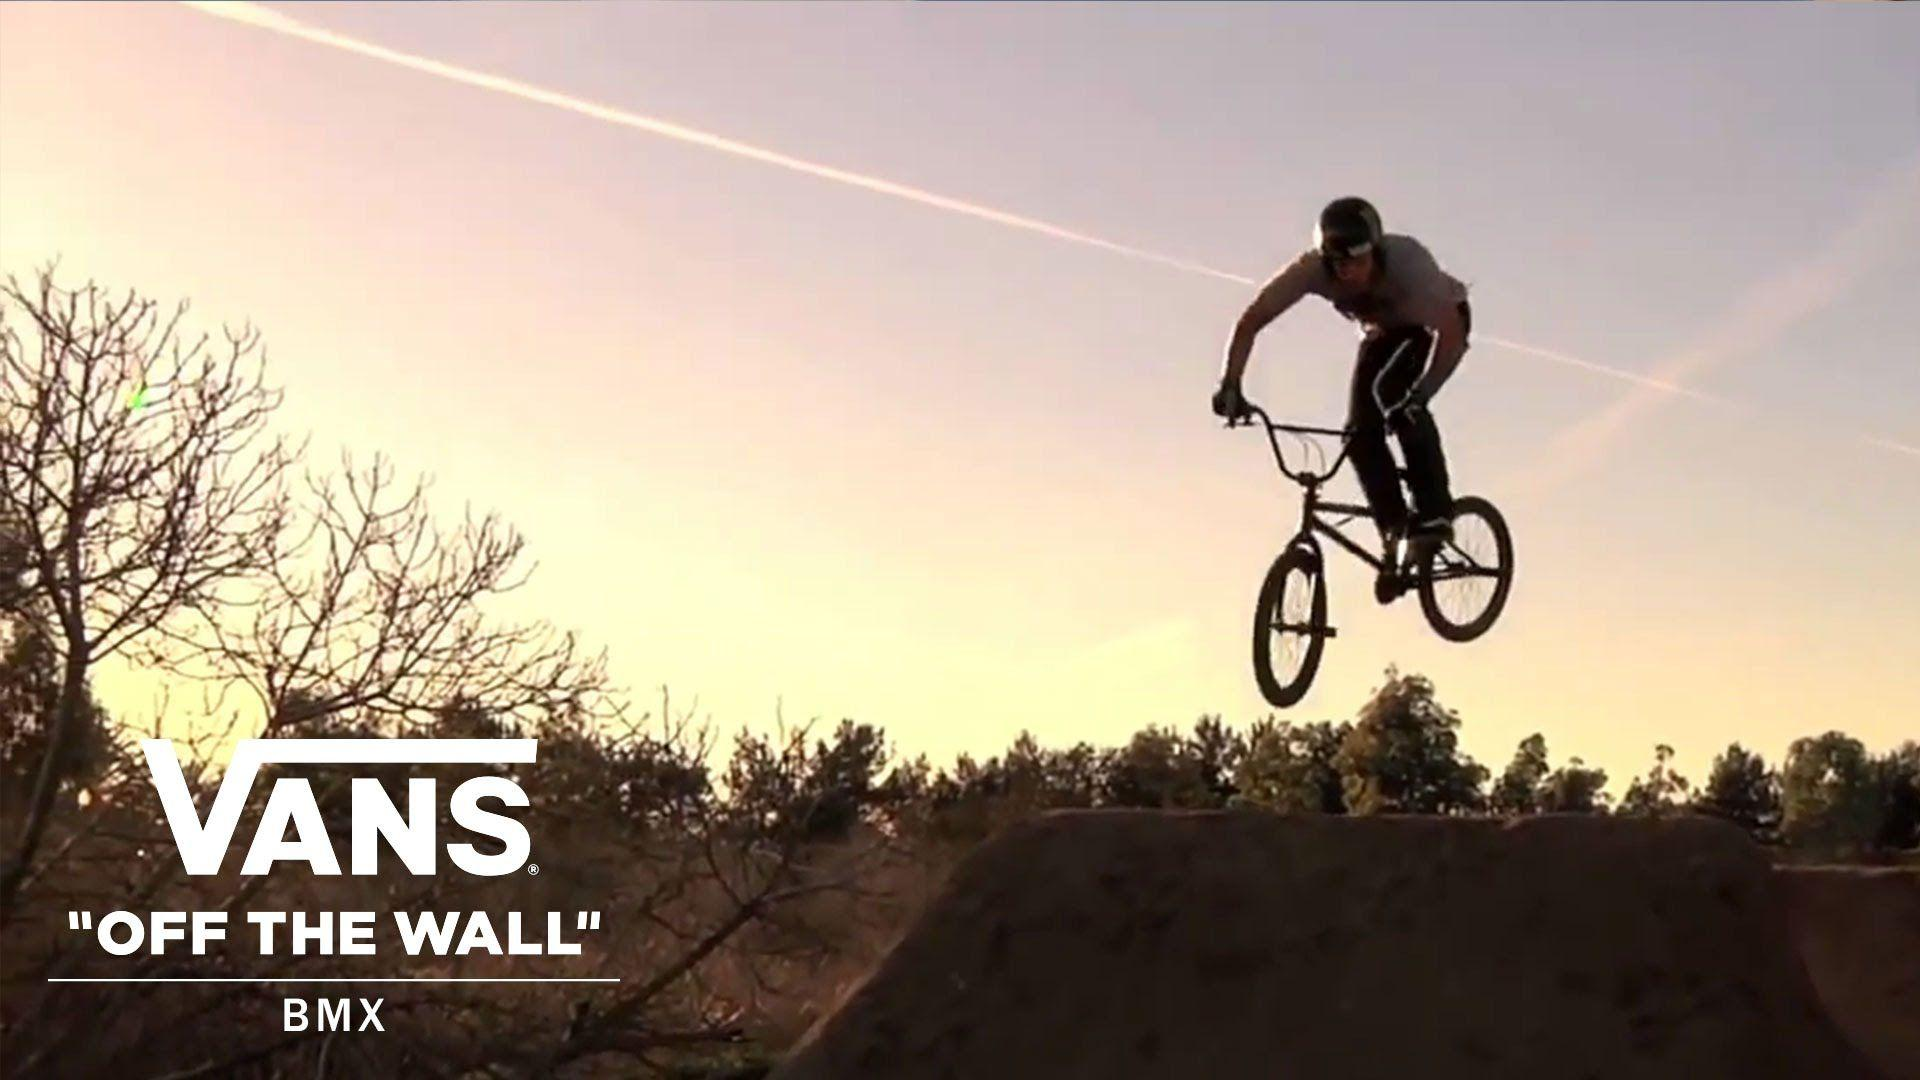 Vans Bmx Wallpapers - Wallpaper Cave